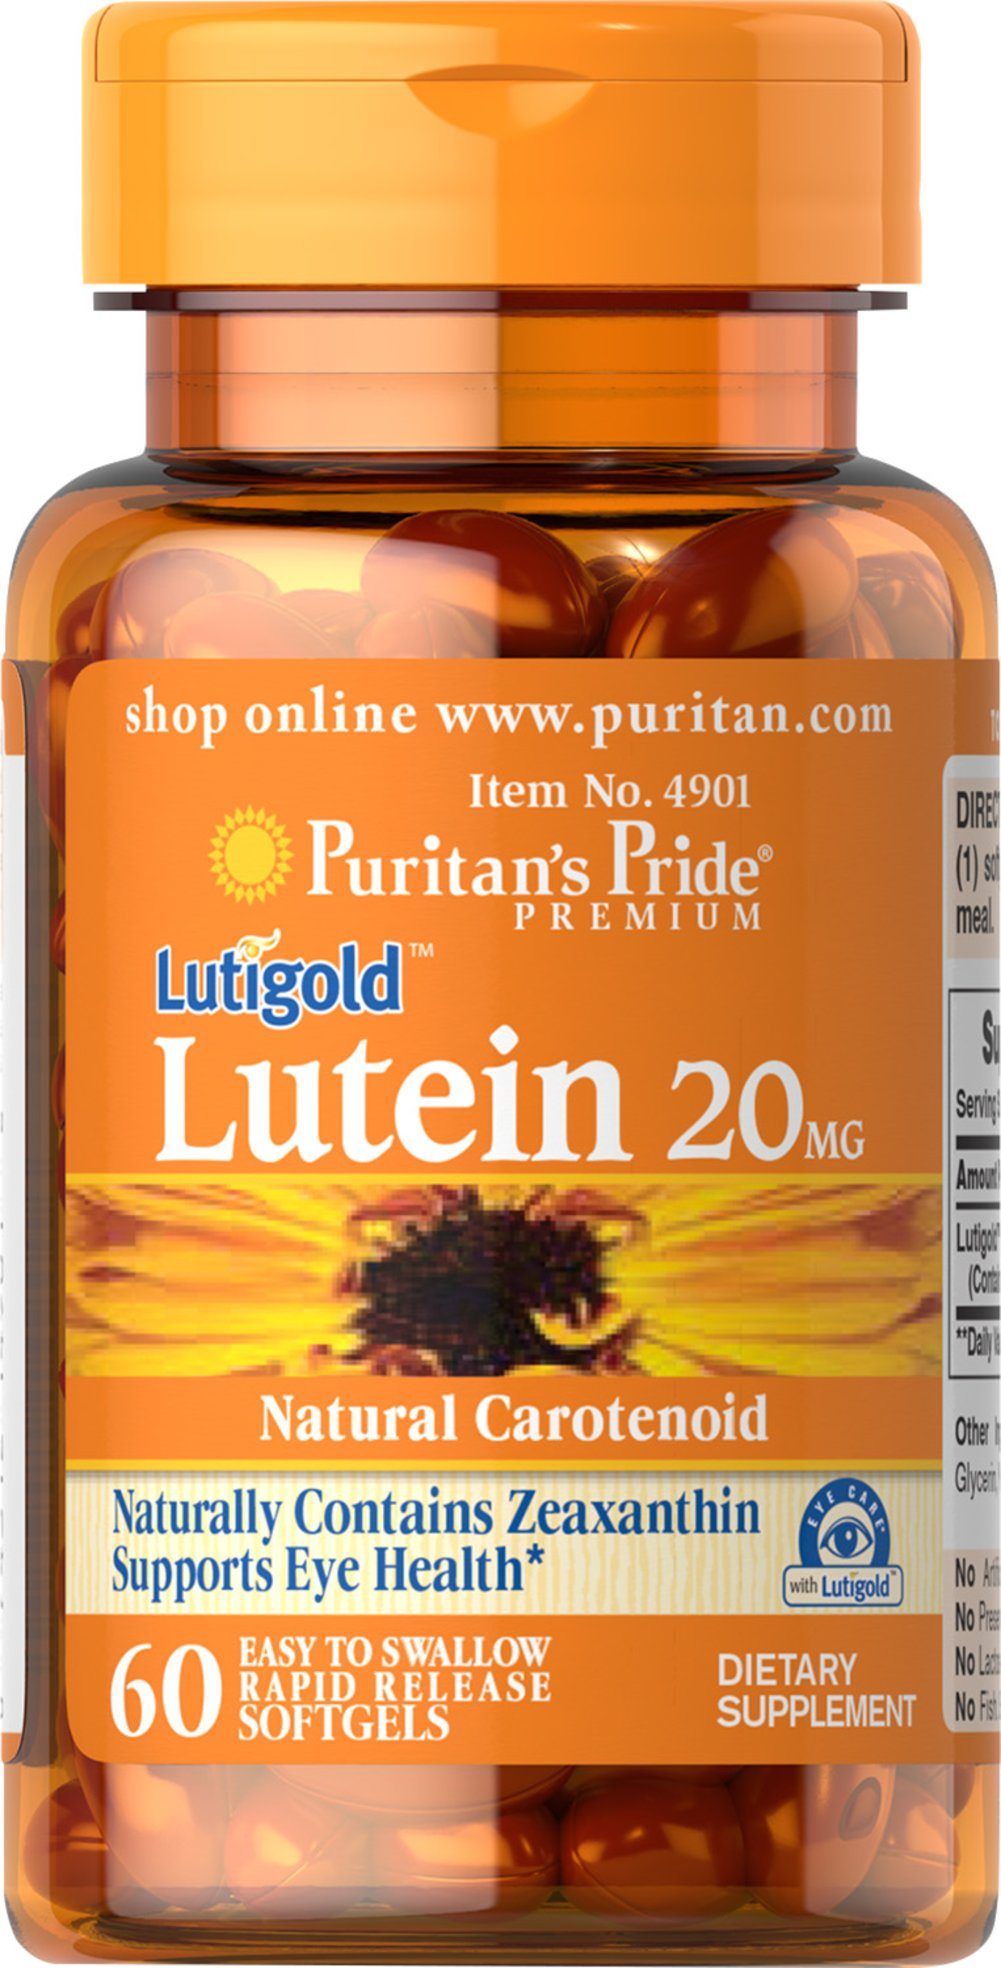 Lutein 20 mg <p>Like other parts of the body, the eyes can be affected by the stresses of time.   Lutein helps to improve vision in low contrast situations, which is essential for night driving.** Lutein Lutigold™ plays a role in the maintenance of eye health and is the principle Carotenoid found in the central area of the retina called the macula.** Carotenoids are fat-soluble antioxidants found in fruits, vegetables, marigolds and other plants.**</p> 60 Softgels 2